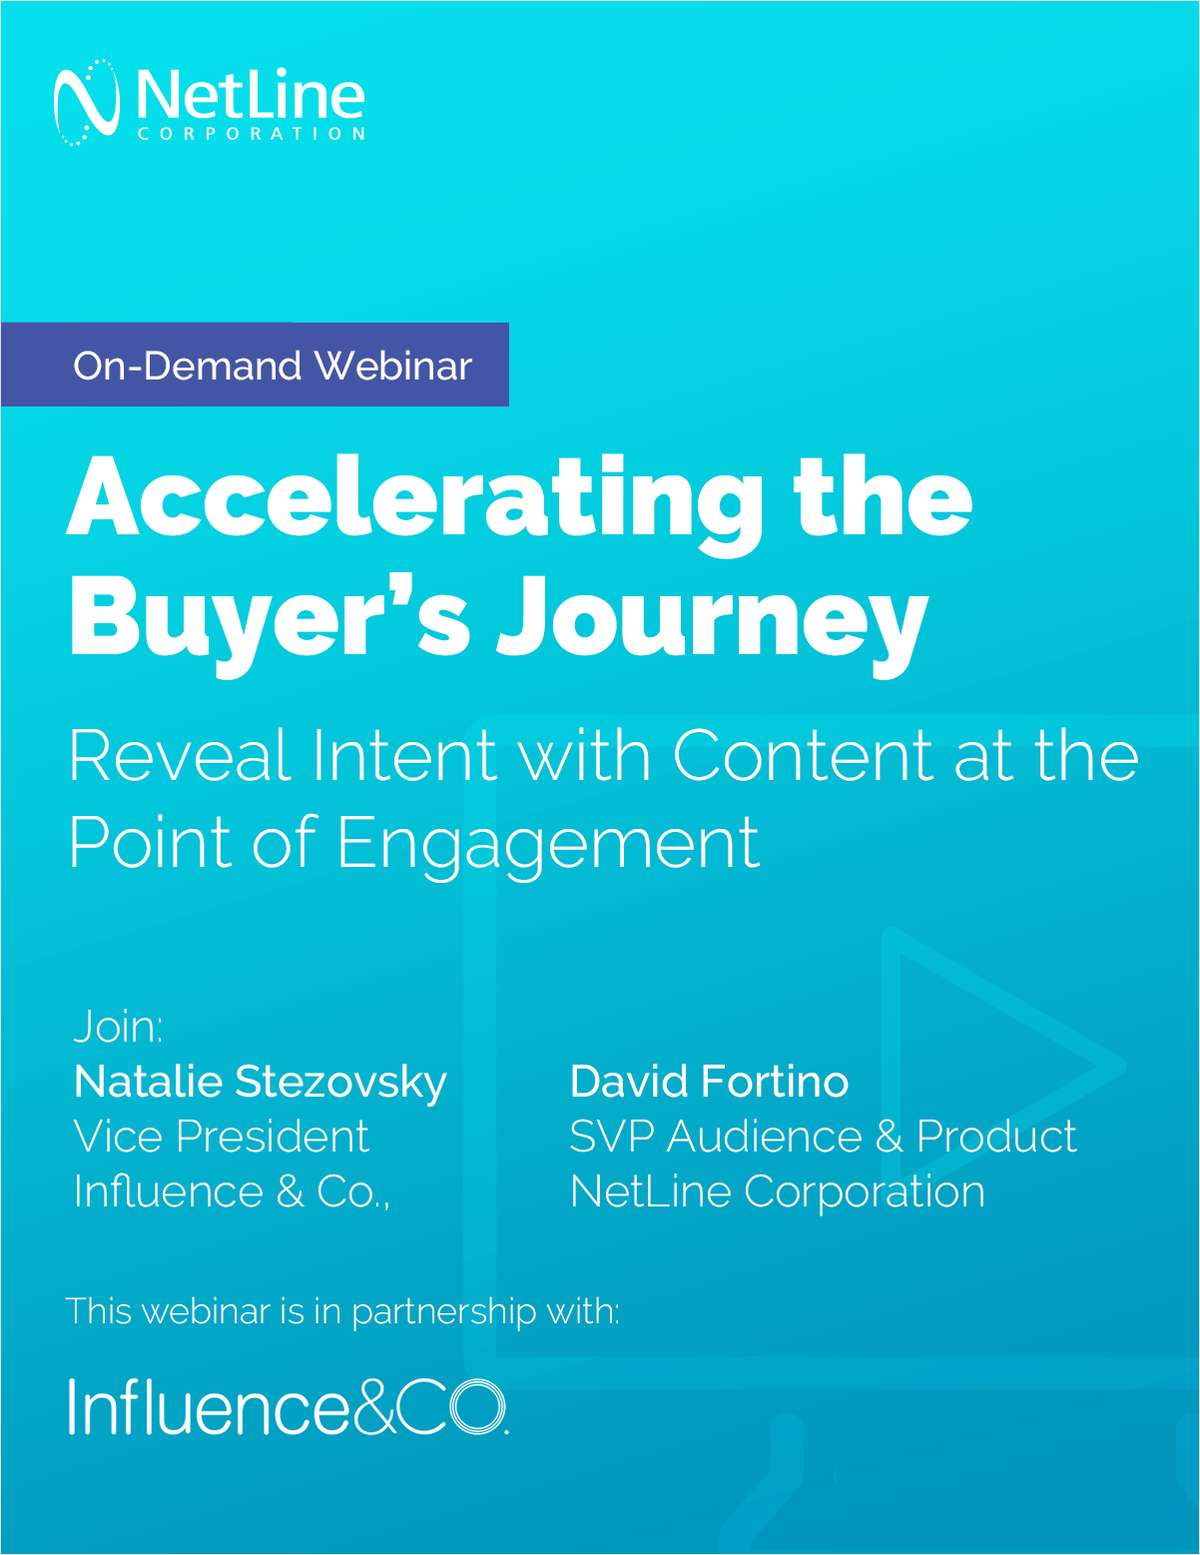 Accelerating the Buyer's Journey: Reveal Intent with Content at the Point of Engagement